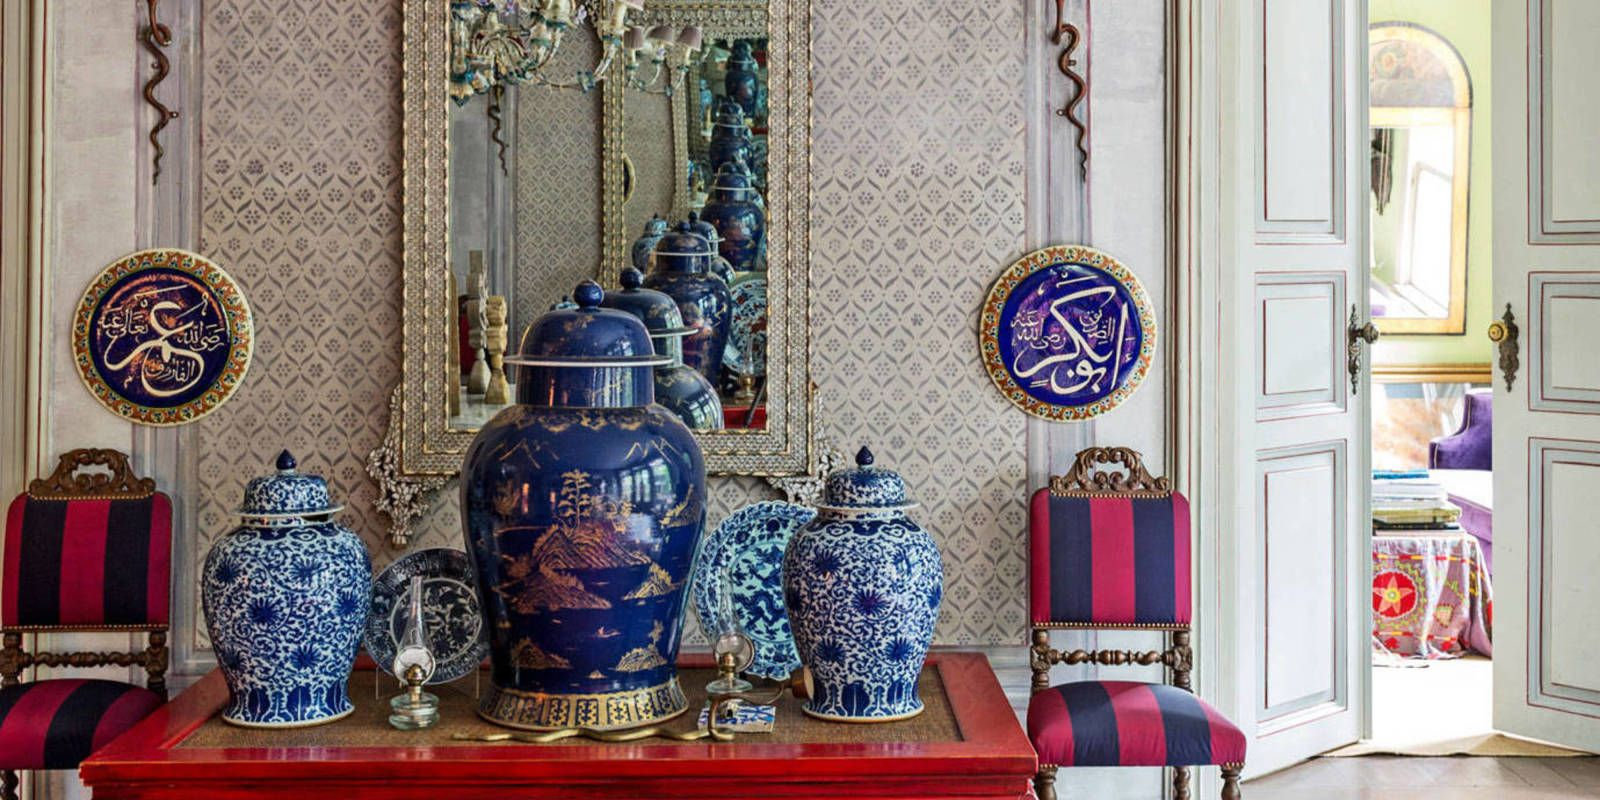 On a hilltop in Istanbul, overlooking a sweep of the Bosphorus strait, sits a fantasy of Ottoman opulence, its rooms filled with the enticing secrets of Turkish bazaars.